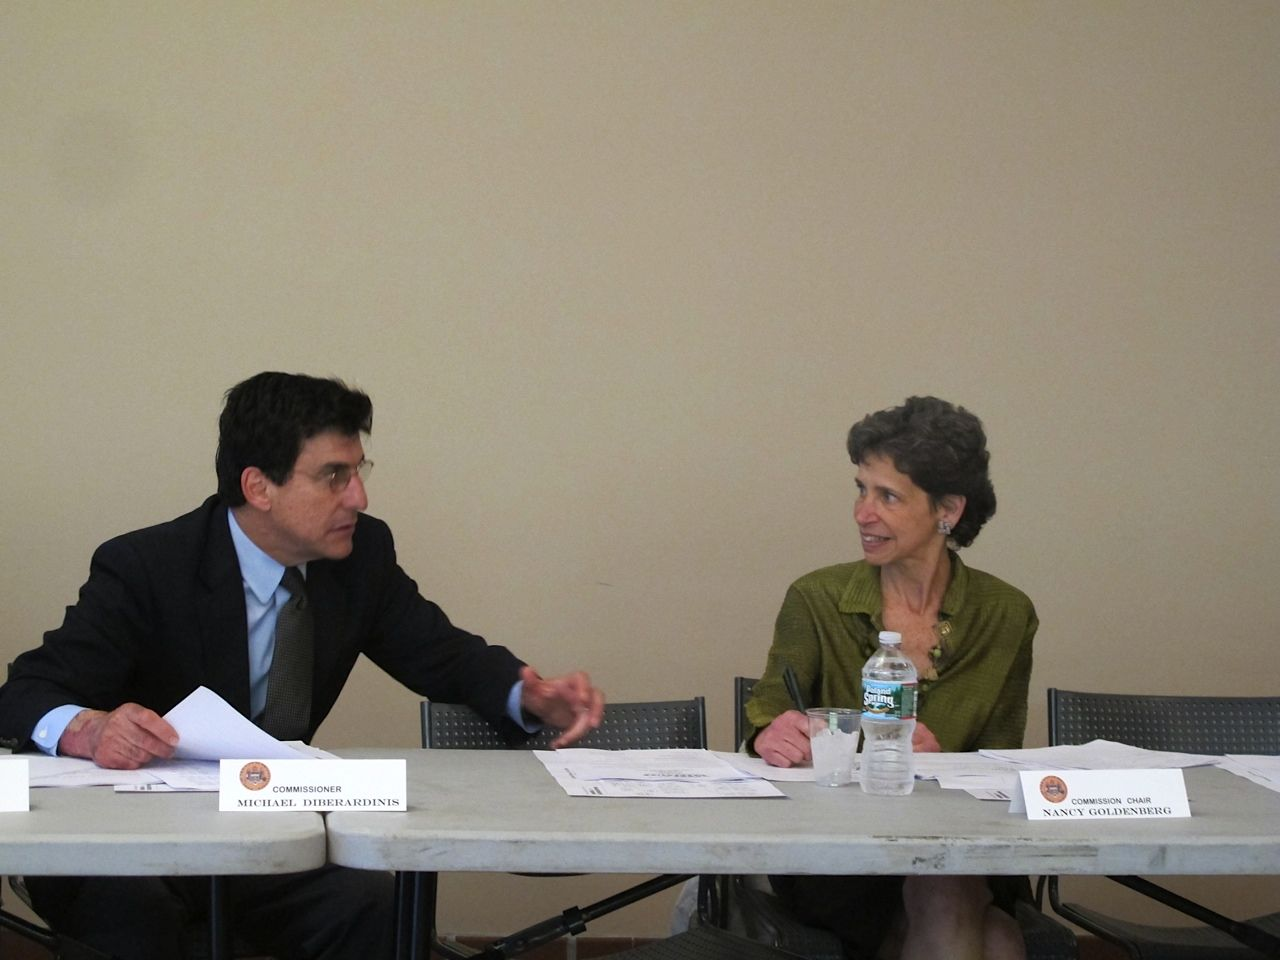 DiBerardinis and Commission Chair Nancy Goldenberg